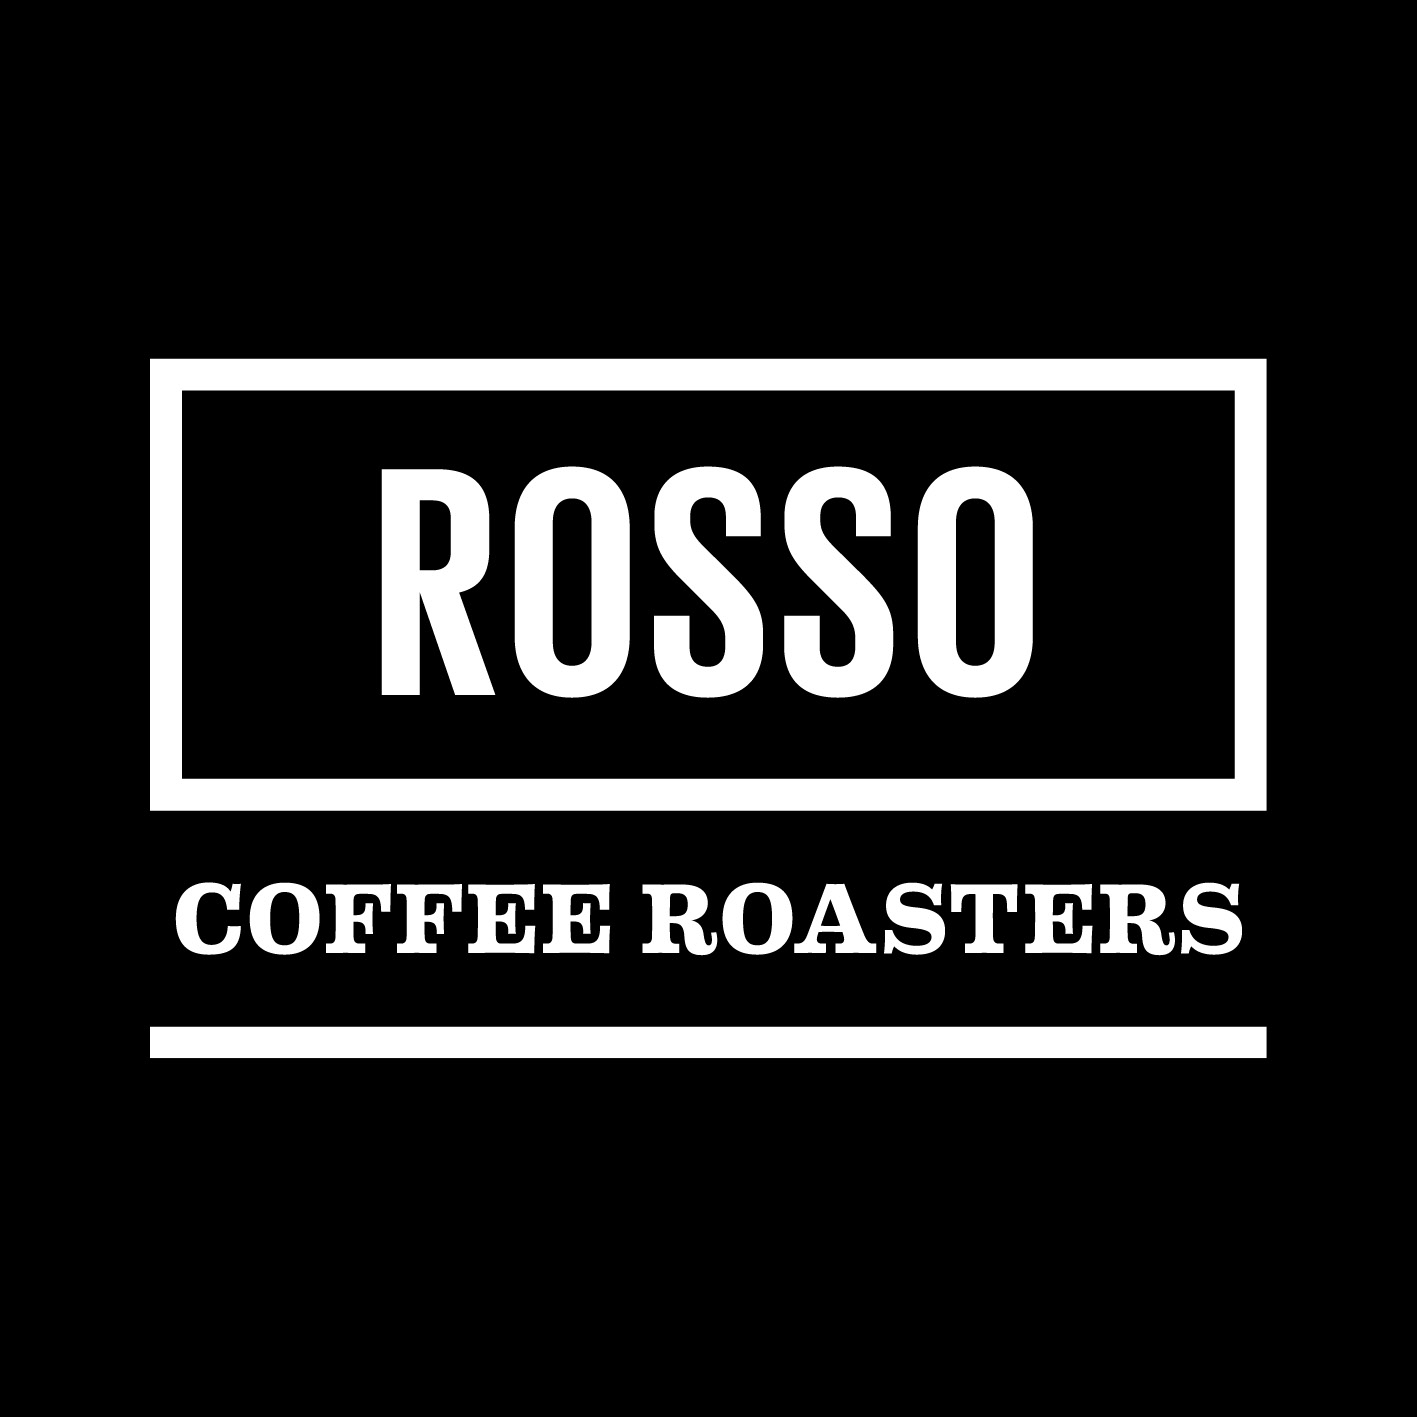 Rosso Coffee Roasters    Rosso is a Calgary, Canada based roaster with multiple cafe locations. They are intent on bringing you the best coffee from around the world.